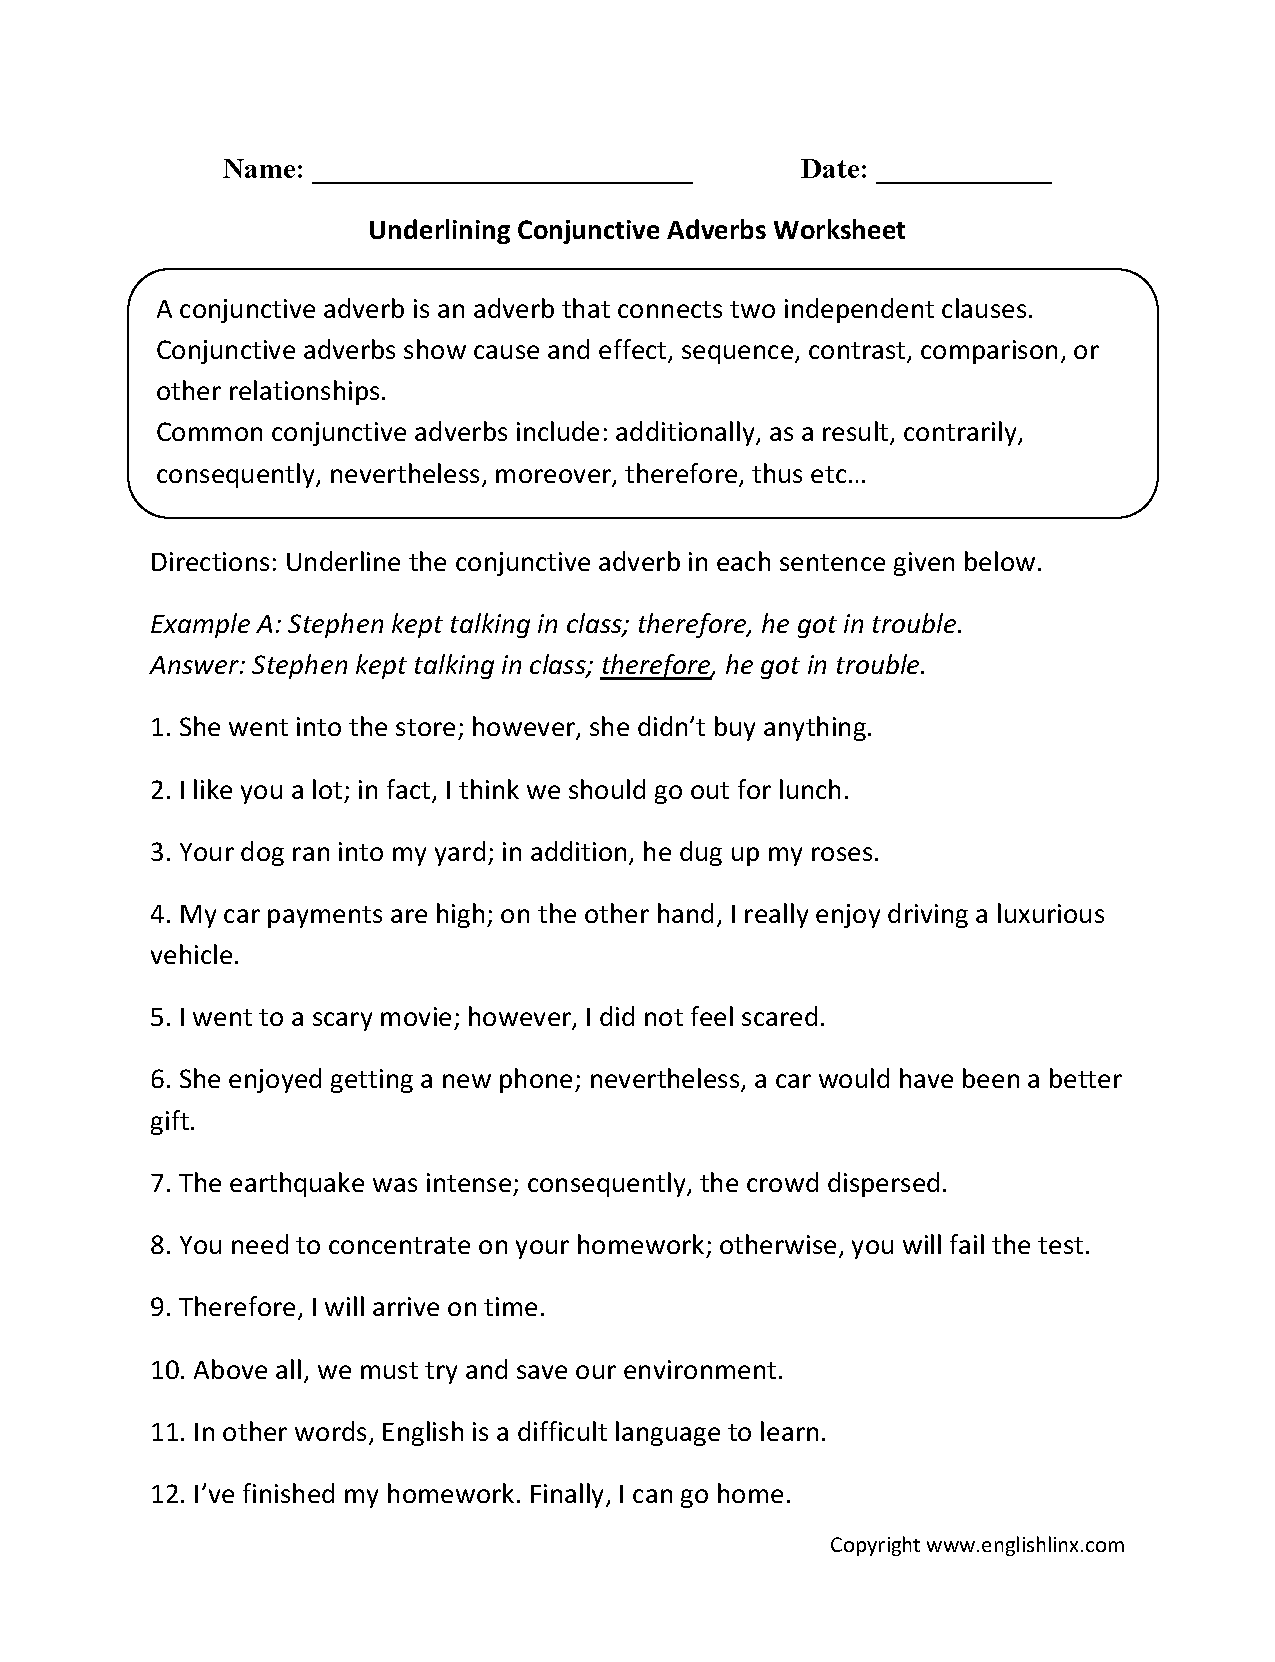 Weirdmailus  Stunning Englishlinxcom  Conjunctions Worksheets With Goodlooking Worksheet With Amazing Antigone Worksheets Also Personal Values List Worksheet In Addition Oxymoron Worksheet And Whole Part Part Worksheet As Well As Exponent Worksheets Algebra  Additionally Sine Cosine Rule Worksheet From Englishlinxcom With Weirdmailus  Goodlooking Englishlinxcom  Conjunctions Worksheets With Amazing Worksheet And Stunning Antigone Worksheets Also Personal Values List Worksheet In Addition Oxymoron Worksheet From Englishlinxcom